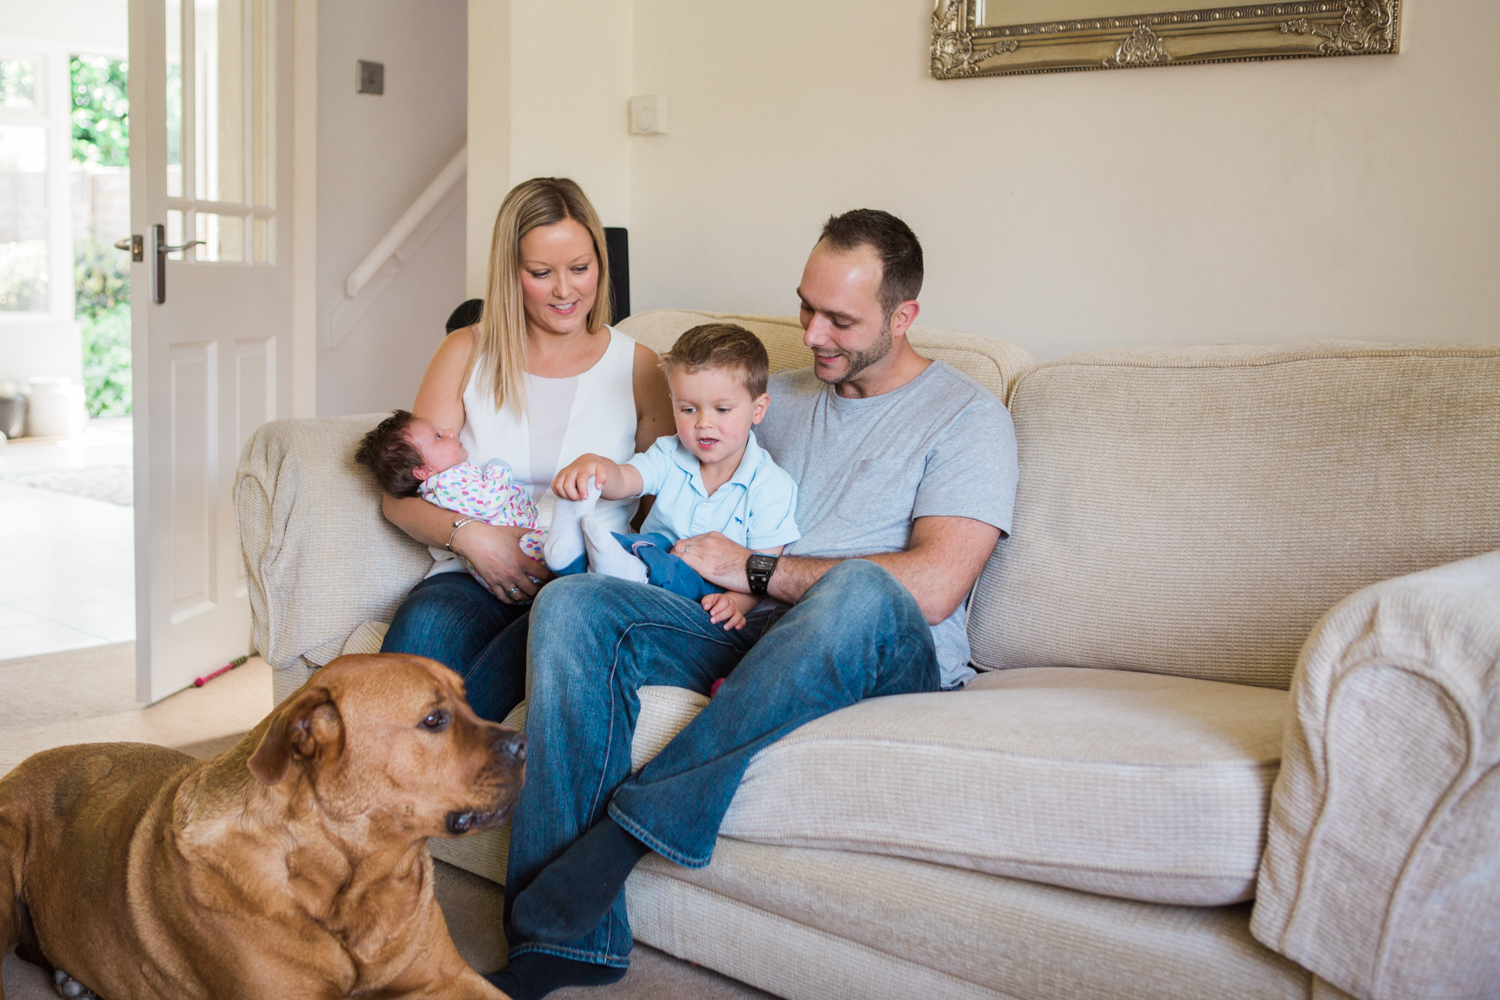 057Sophie Evans Photography, Warwickshire Family Photography, Taylor Family.jpg